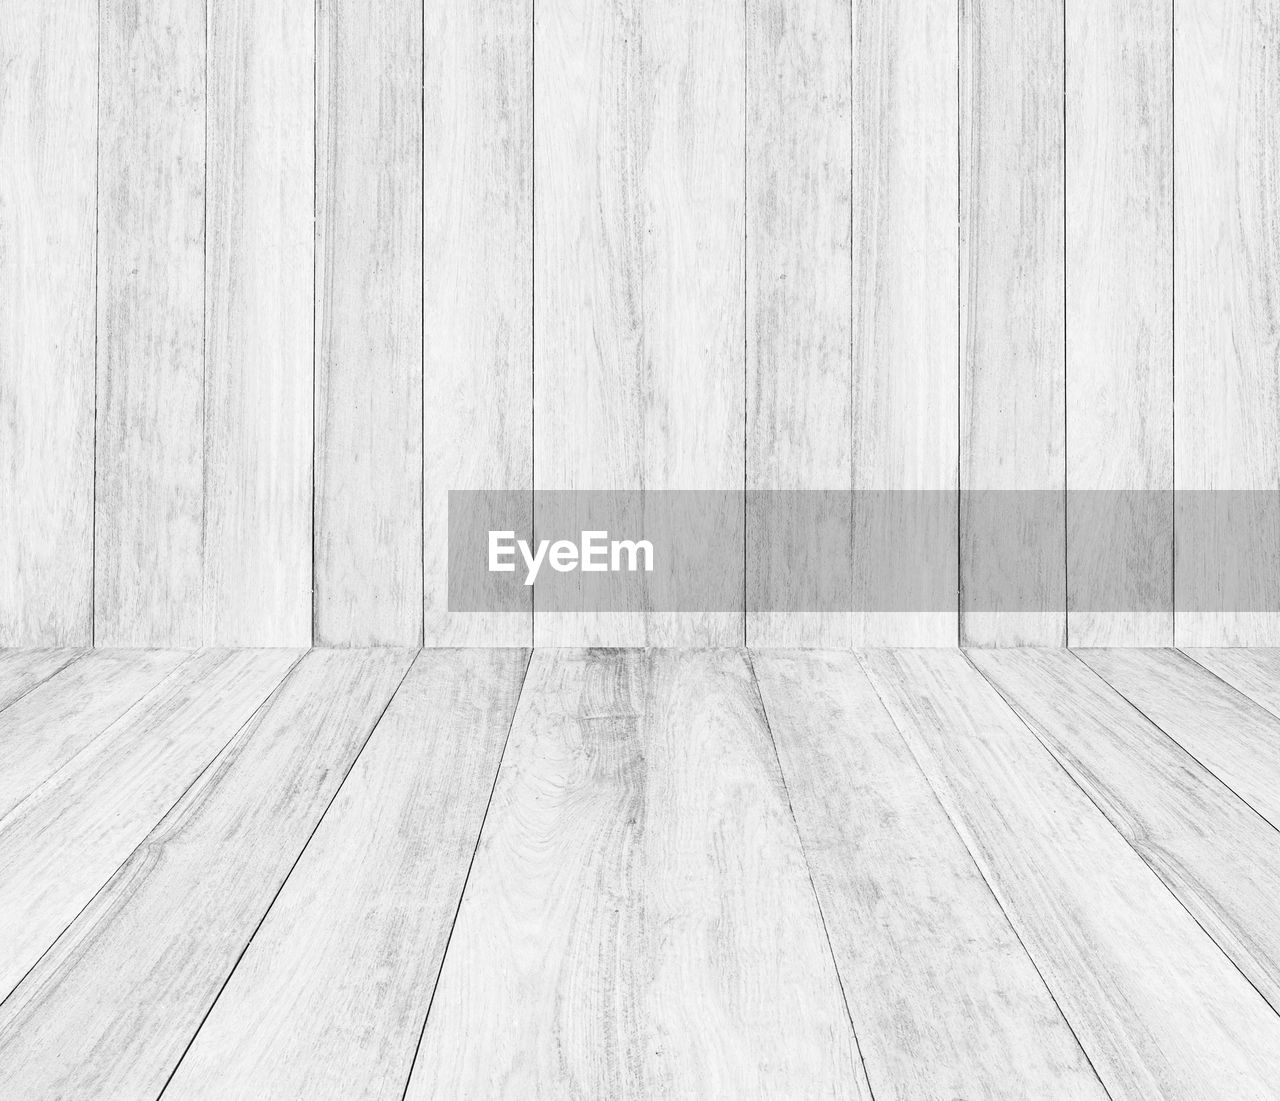 wood - material, wood, hardwood floor, flooring, pattern, backgrounds, full frame, indoors, no people, textured, day, home interior, empty, wall - building feature, close-up, built structure, architecture, parquet floor, brown, plank, wood grain, blank